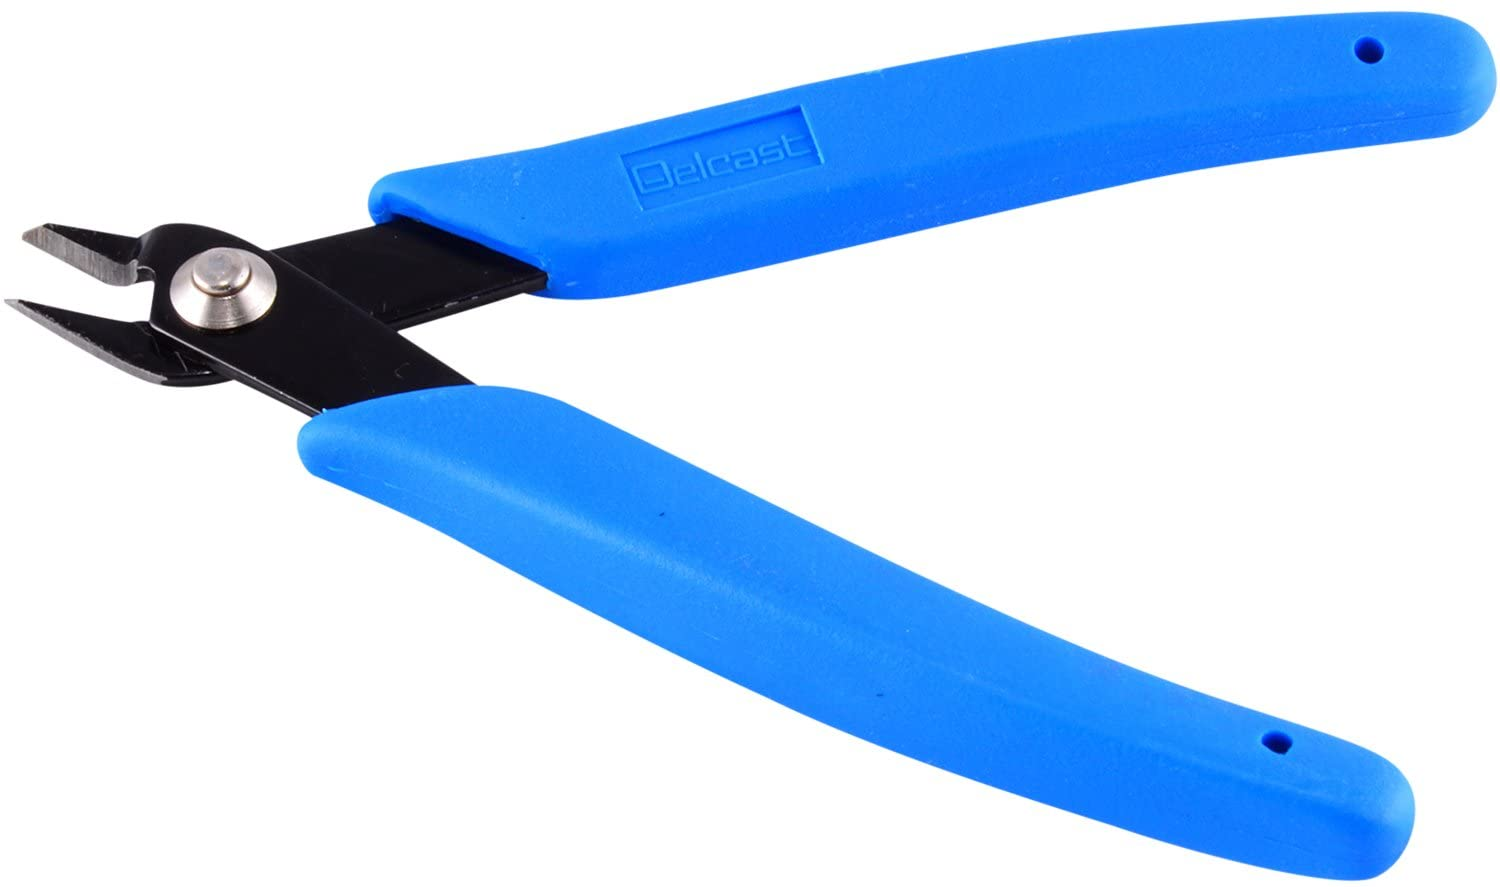 Delcast MEC-5A Flush Cutter Pliers with 14 AWG Cutting Capacity